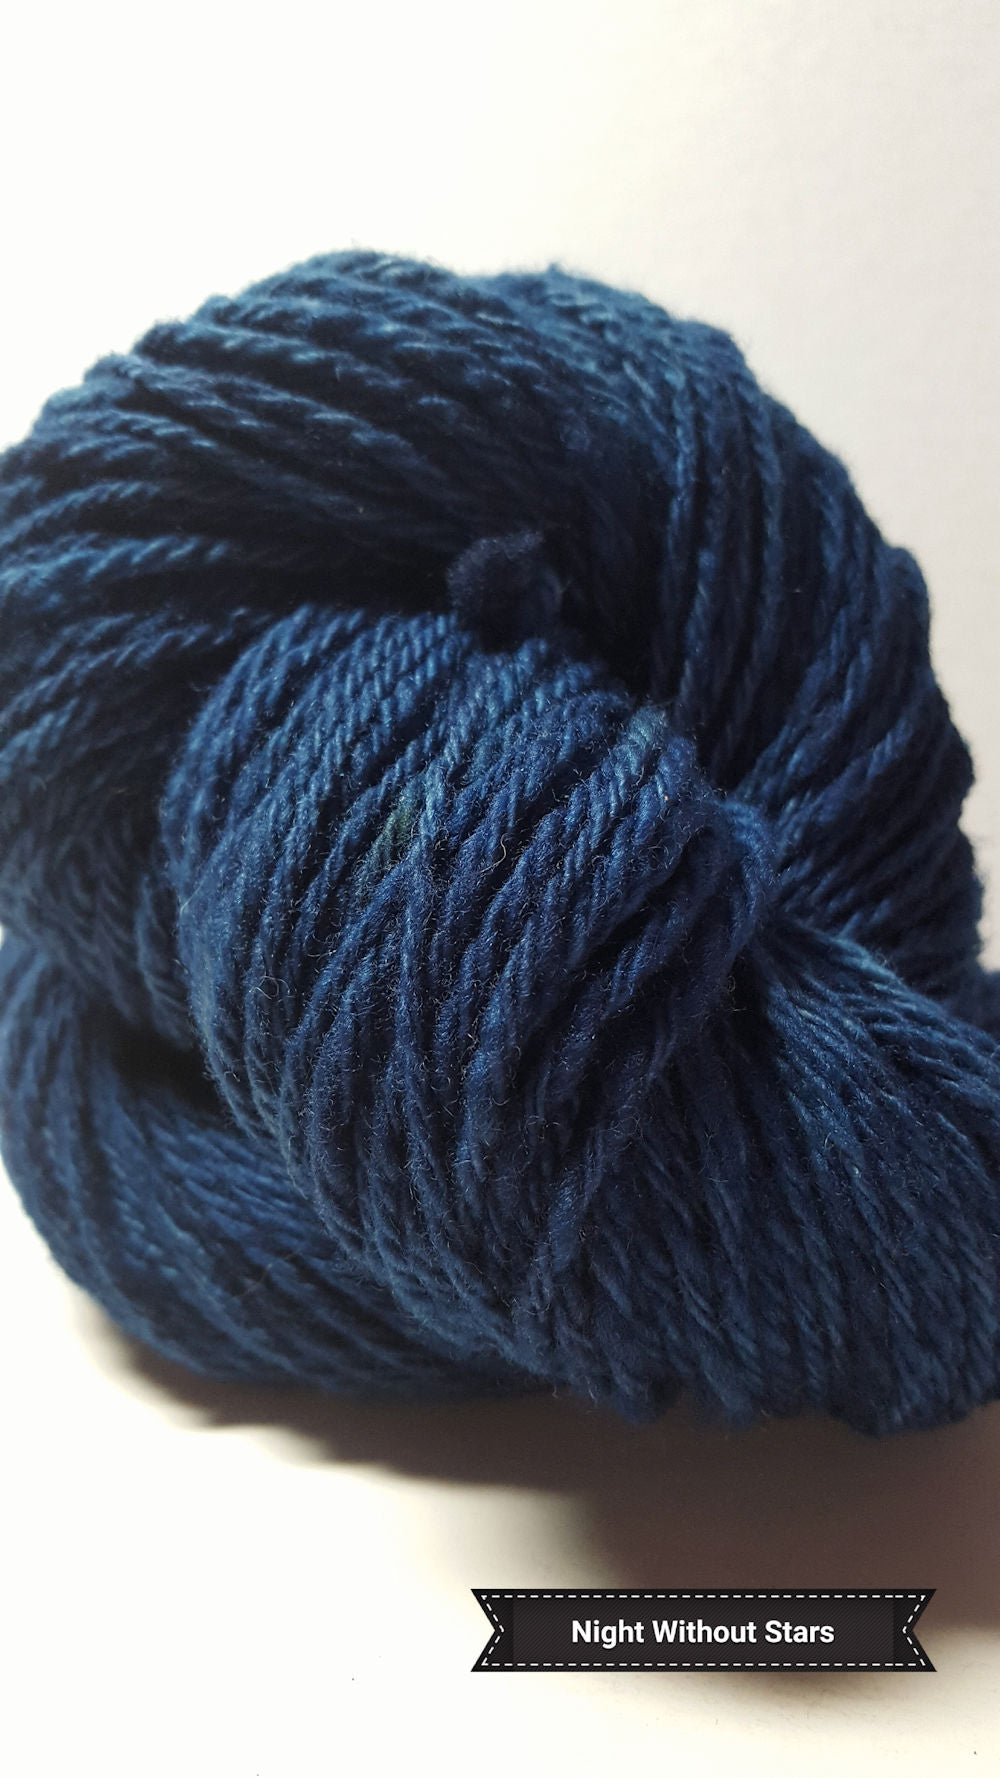 Night Without Stars - Hand Dyed Aran/Worsted Yarn for Rug Hooking